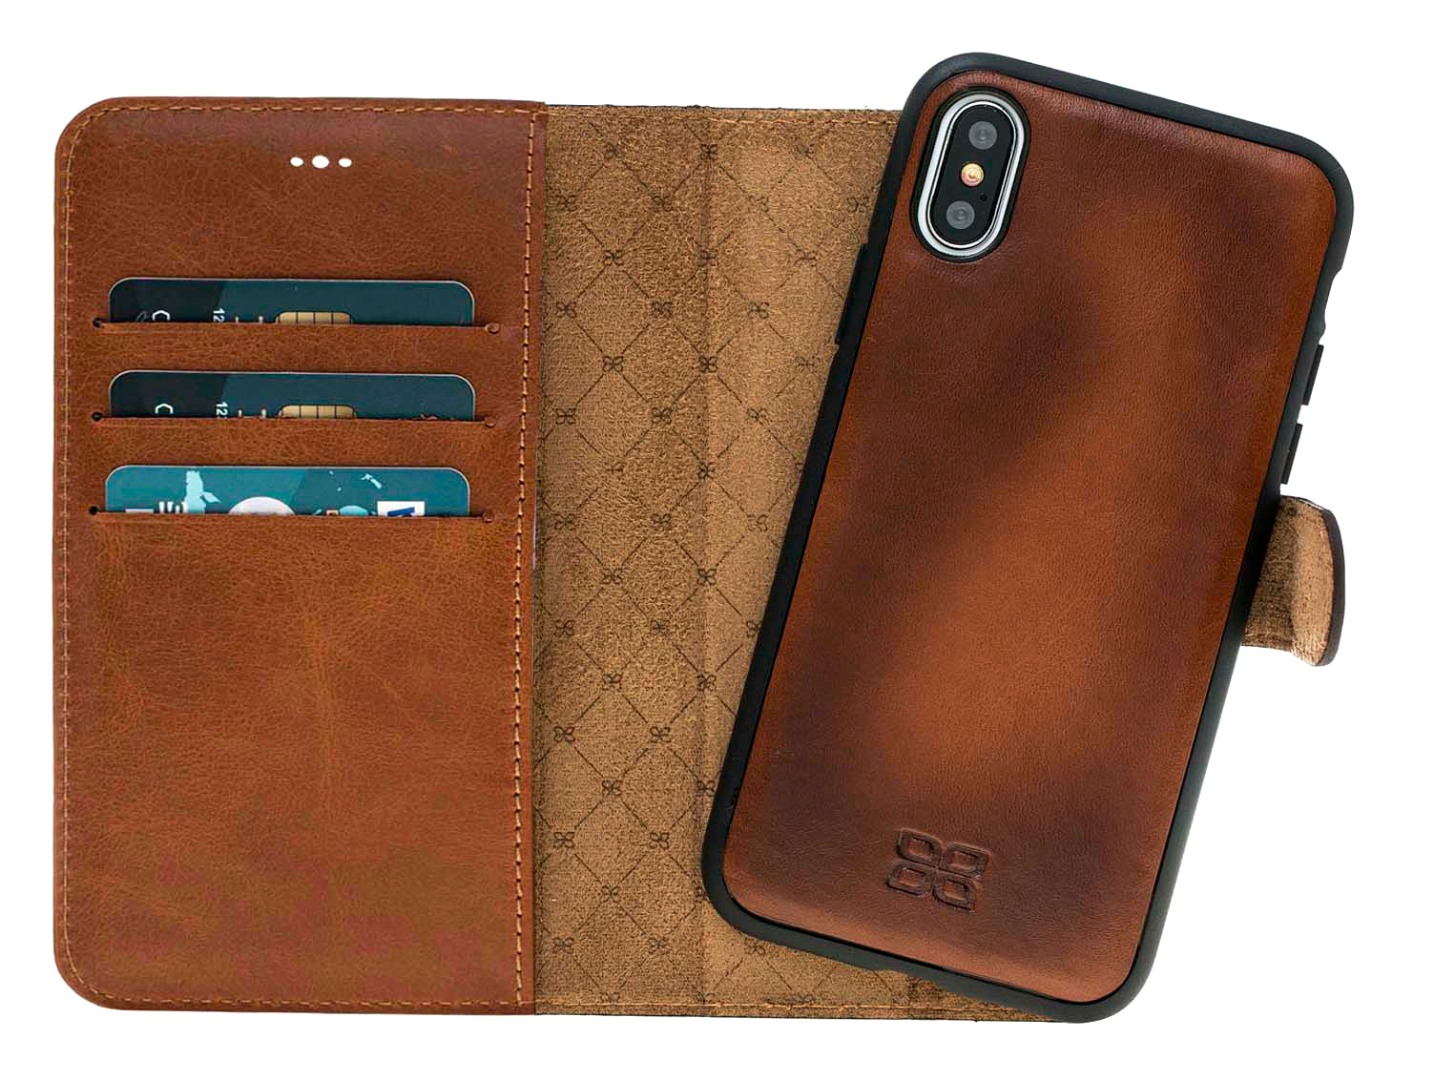 Husa piele naturala 2 in 1, tip portofel + back cover, iPhone X / XS - Bouletta Magic Wallet, Burnished tan